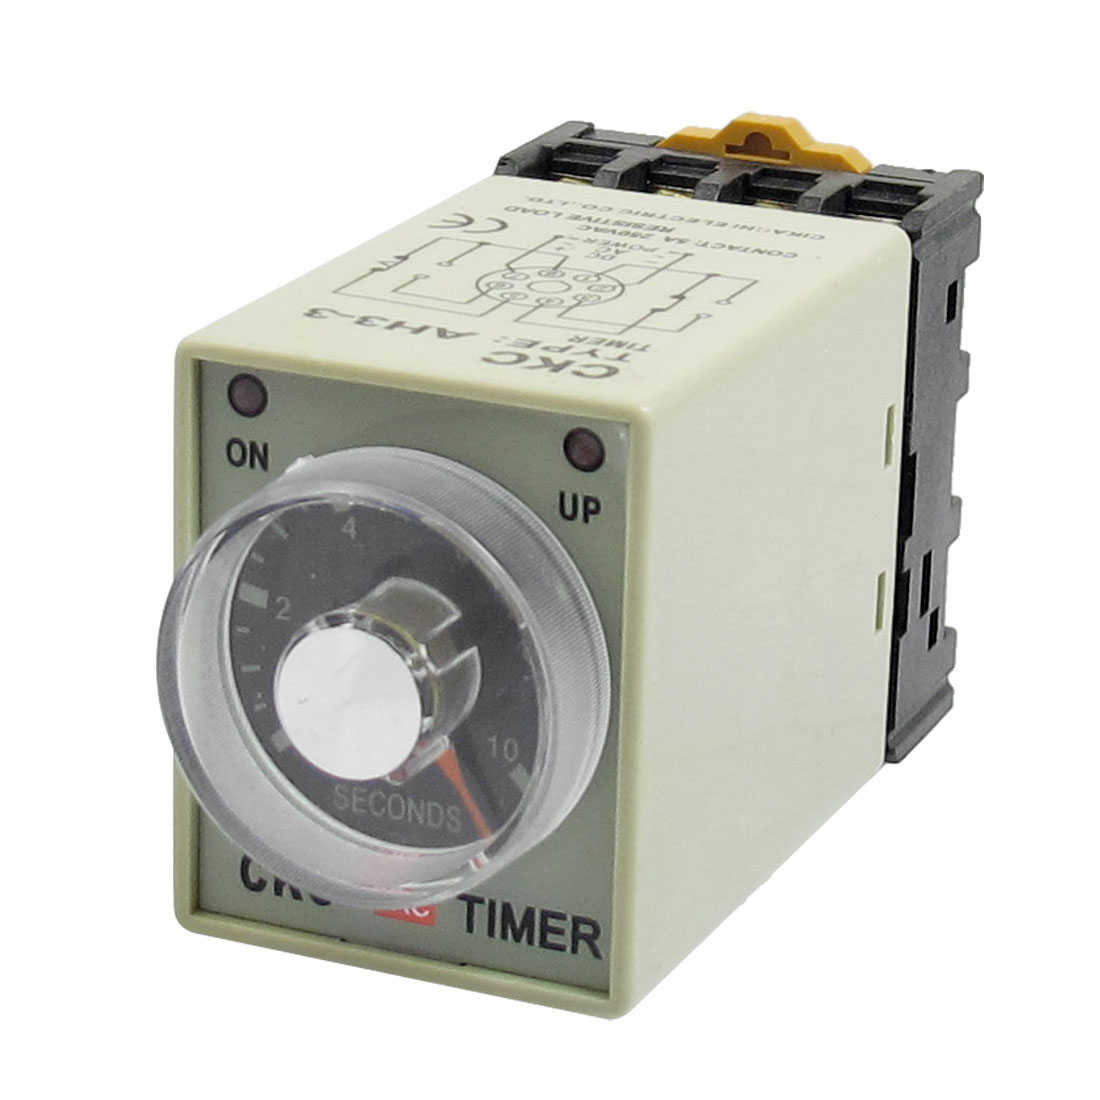 AH3-3 AC 380V 0-10s 10 Second 8P Terminals Delay Timer Time Relay w Base